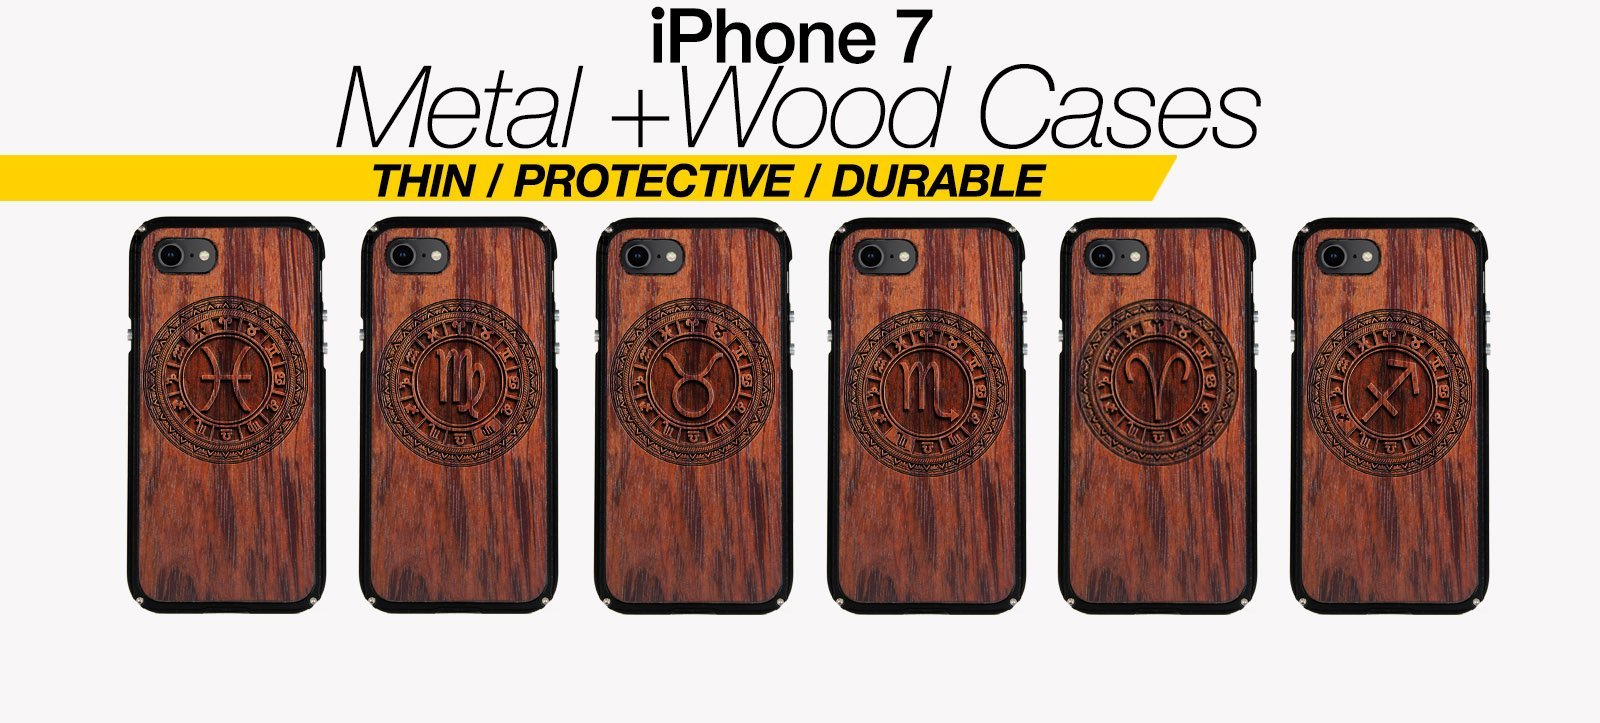 Zodiac Signs iPhone 7 Cases Best Zodiac Horoscope Metal Wood iPhone 7 Covers Gifts For Zodiac Lovers Fans Astrology Cases Phone Birthday Gifts For Astrology Lovers